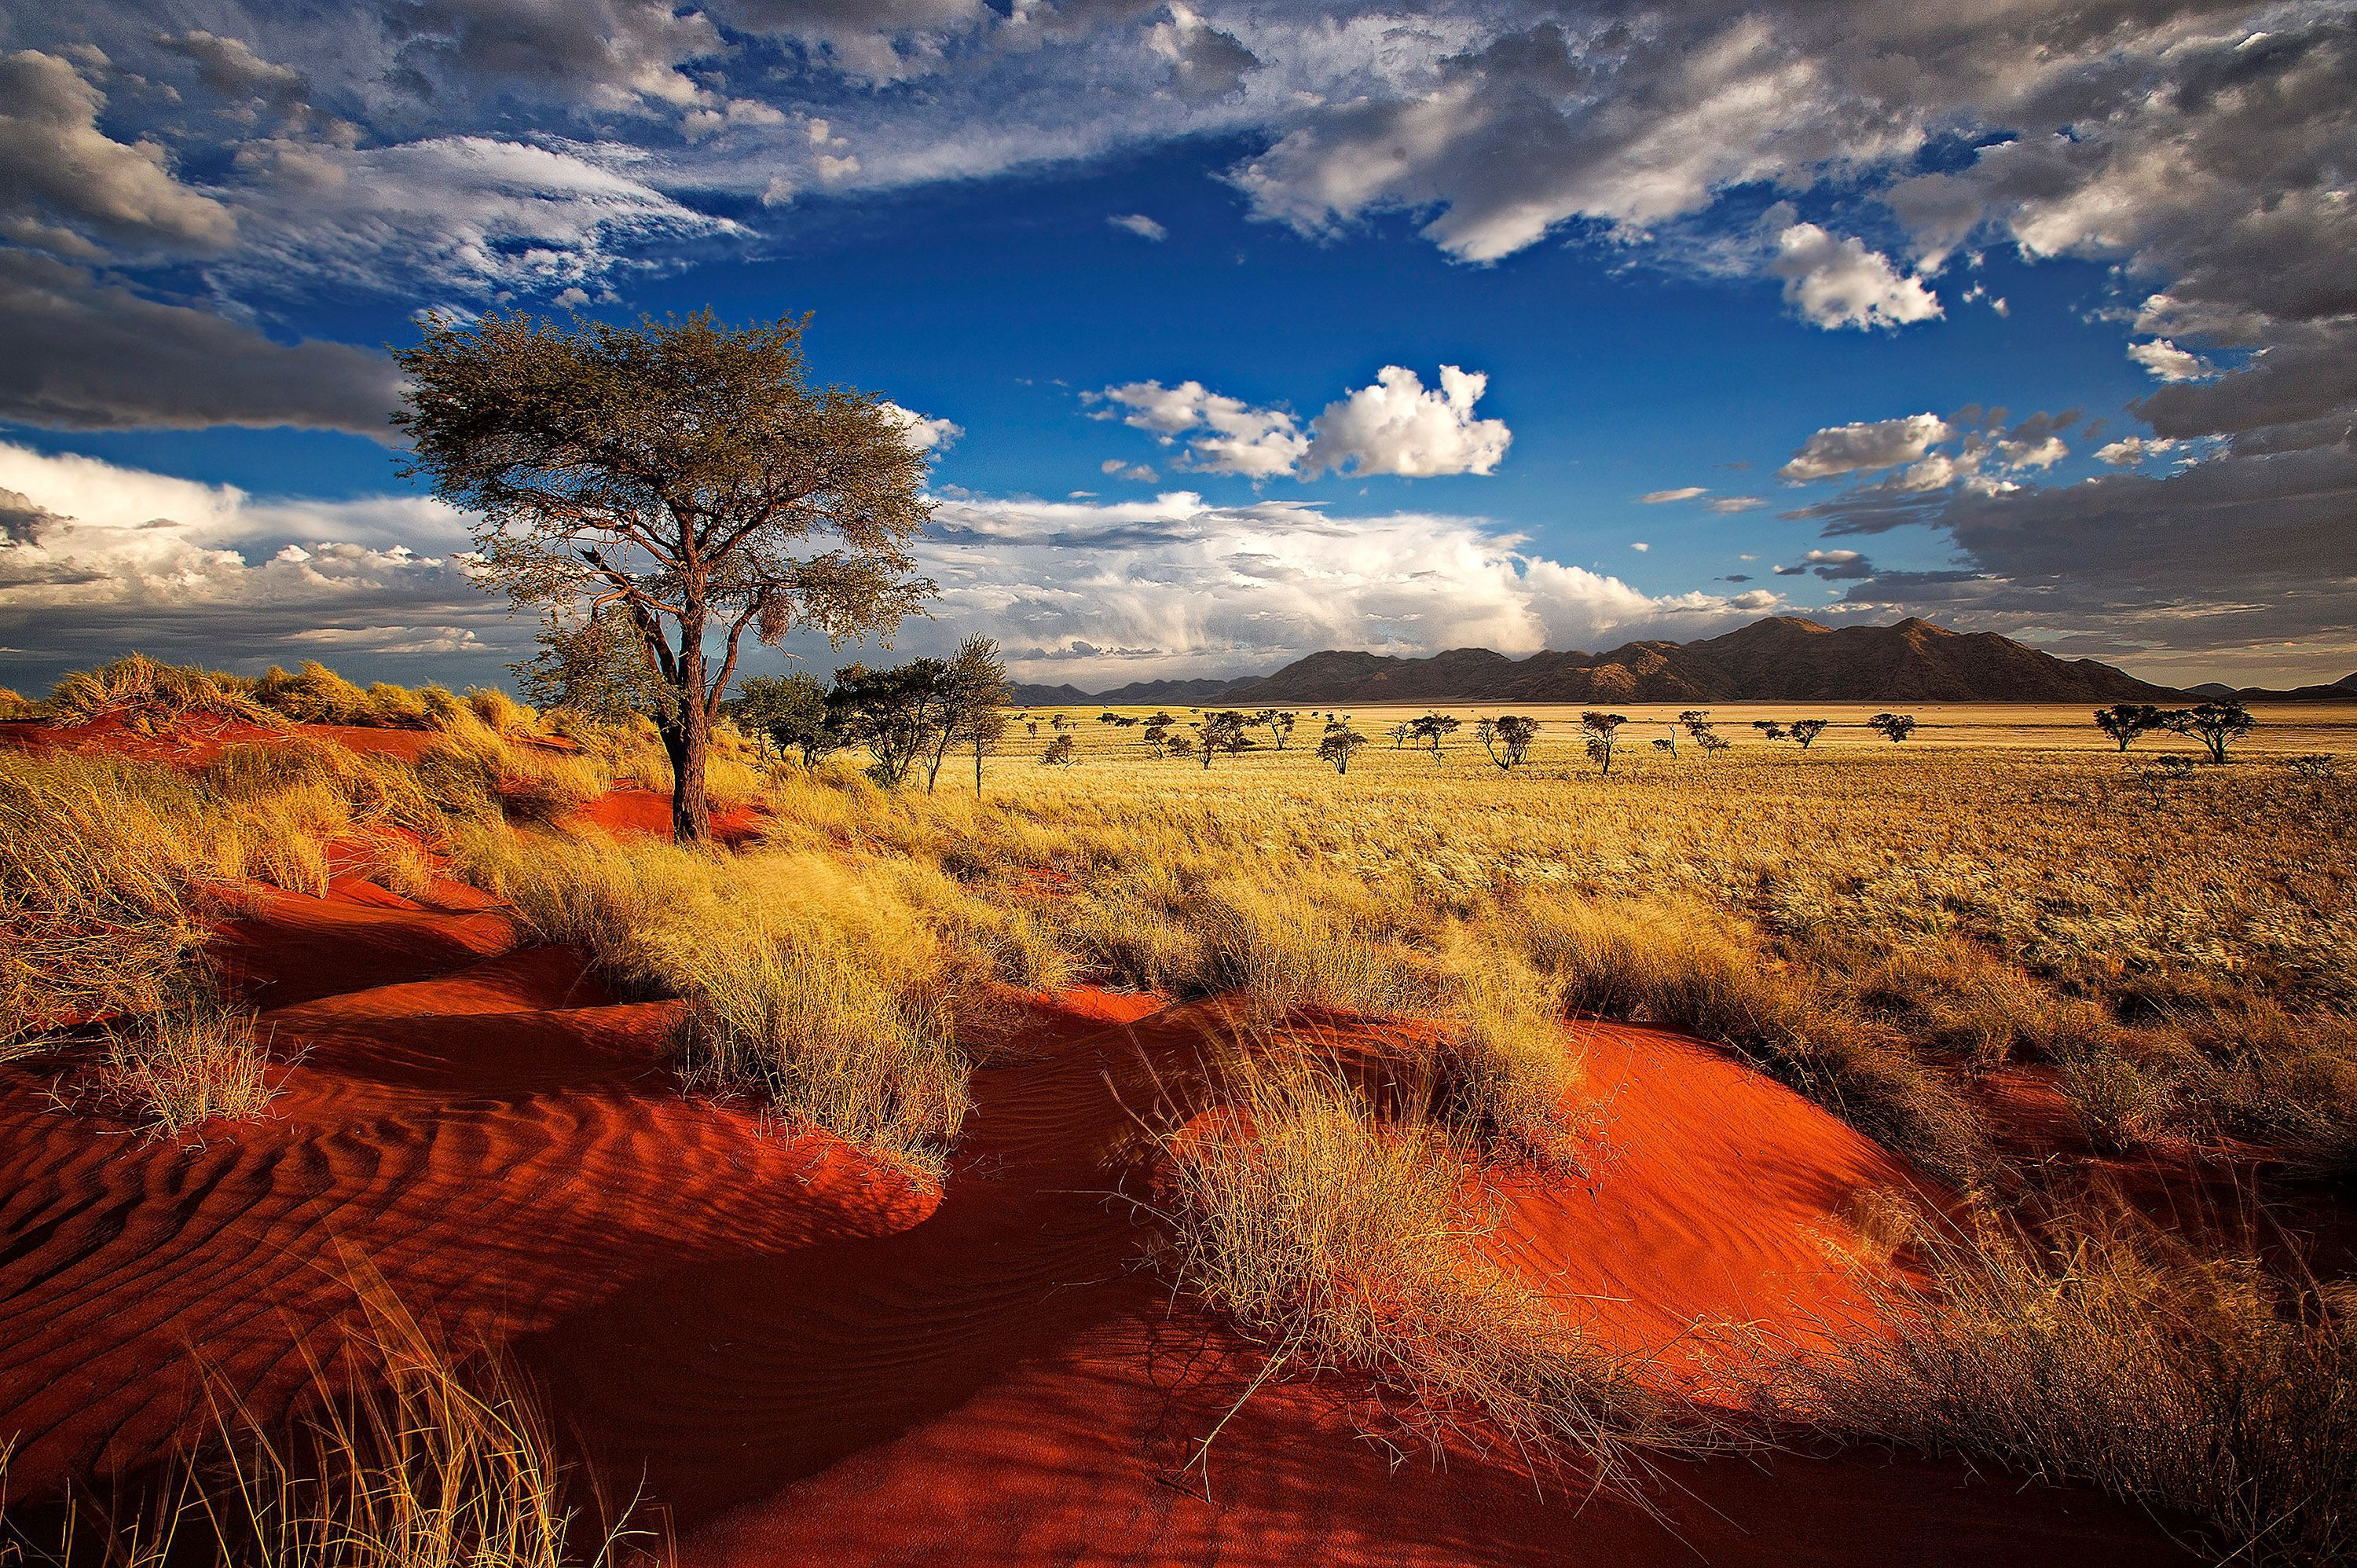 Wind Cathedral Namibia Wallpapers Images Photos Pictures